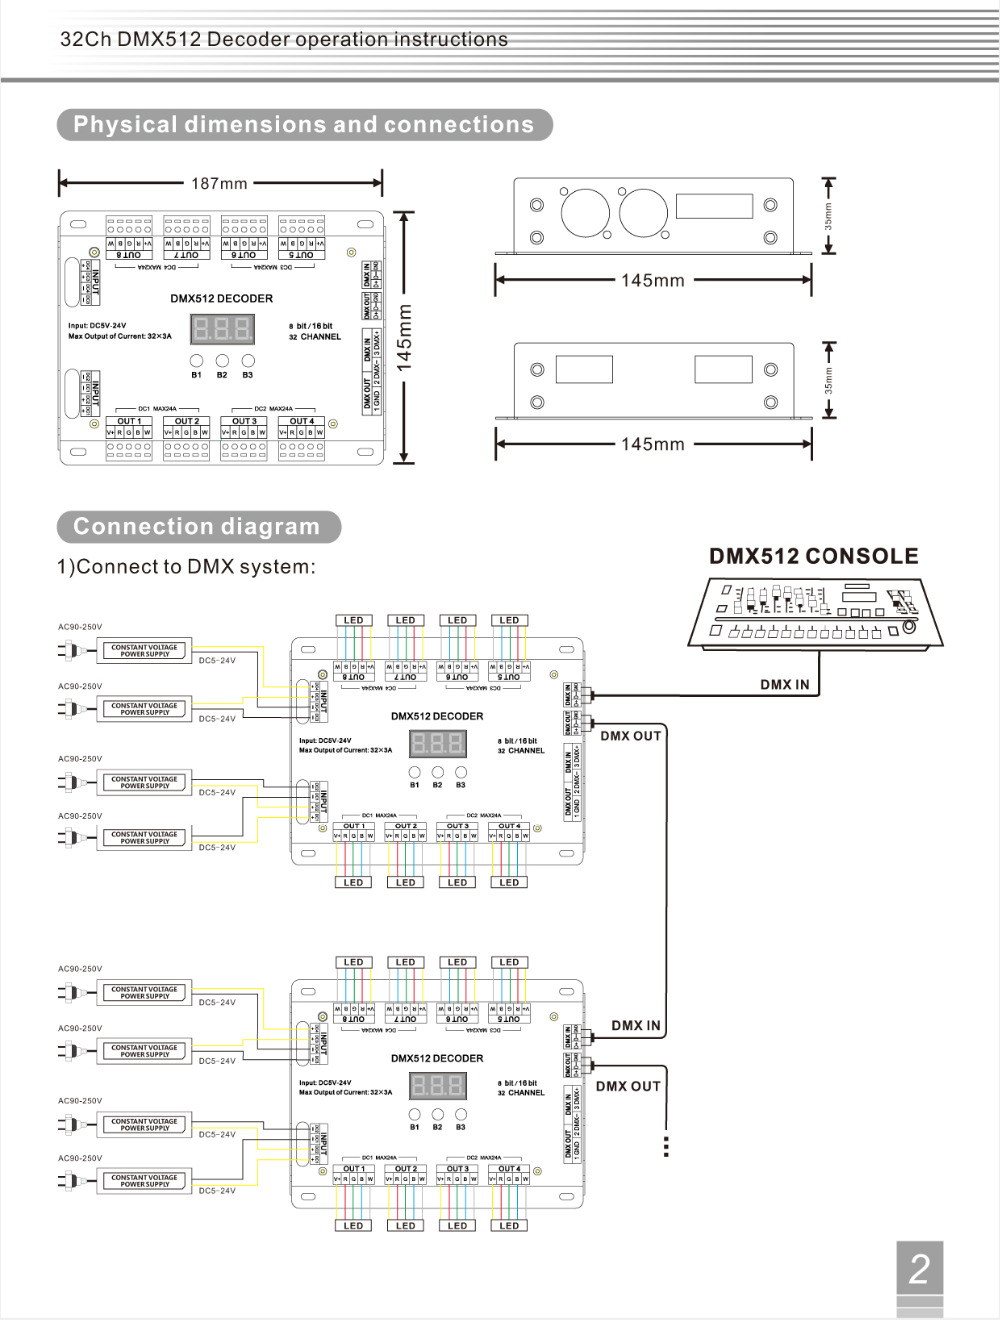 32 Channel 96A RGBW DMX 512 LED Decoder Controller DMX Dimmer DC5 24V RGBW RGB LED light 8 Bit/16 Bit - 3